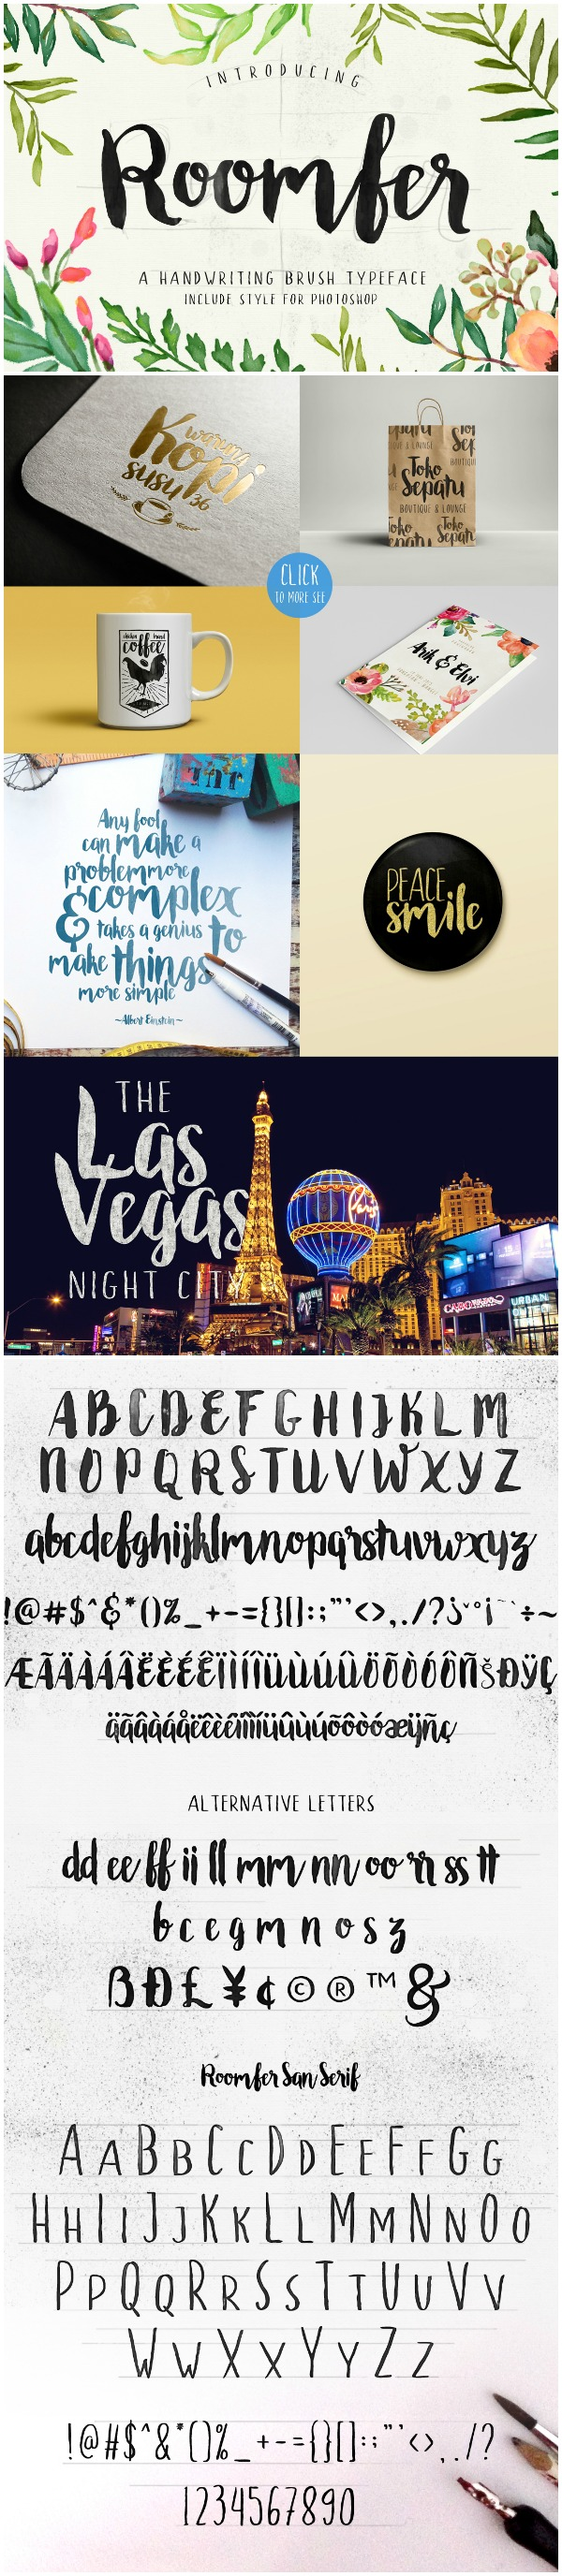 Font Favortites: Roomfer font is a great casual brush script font. iIt is bold but unassuming and pairs well with more delicate fonts.